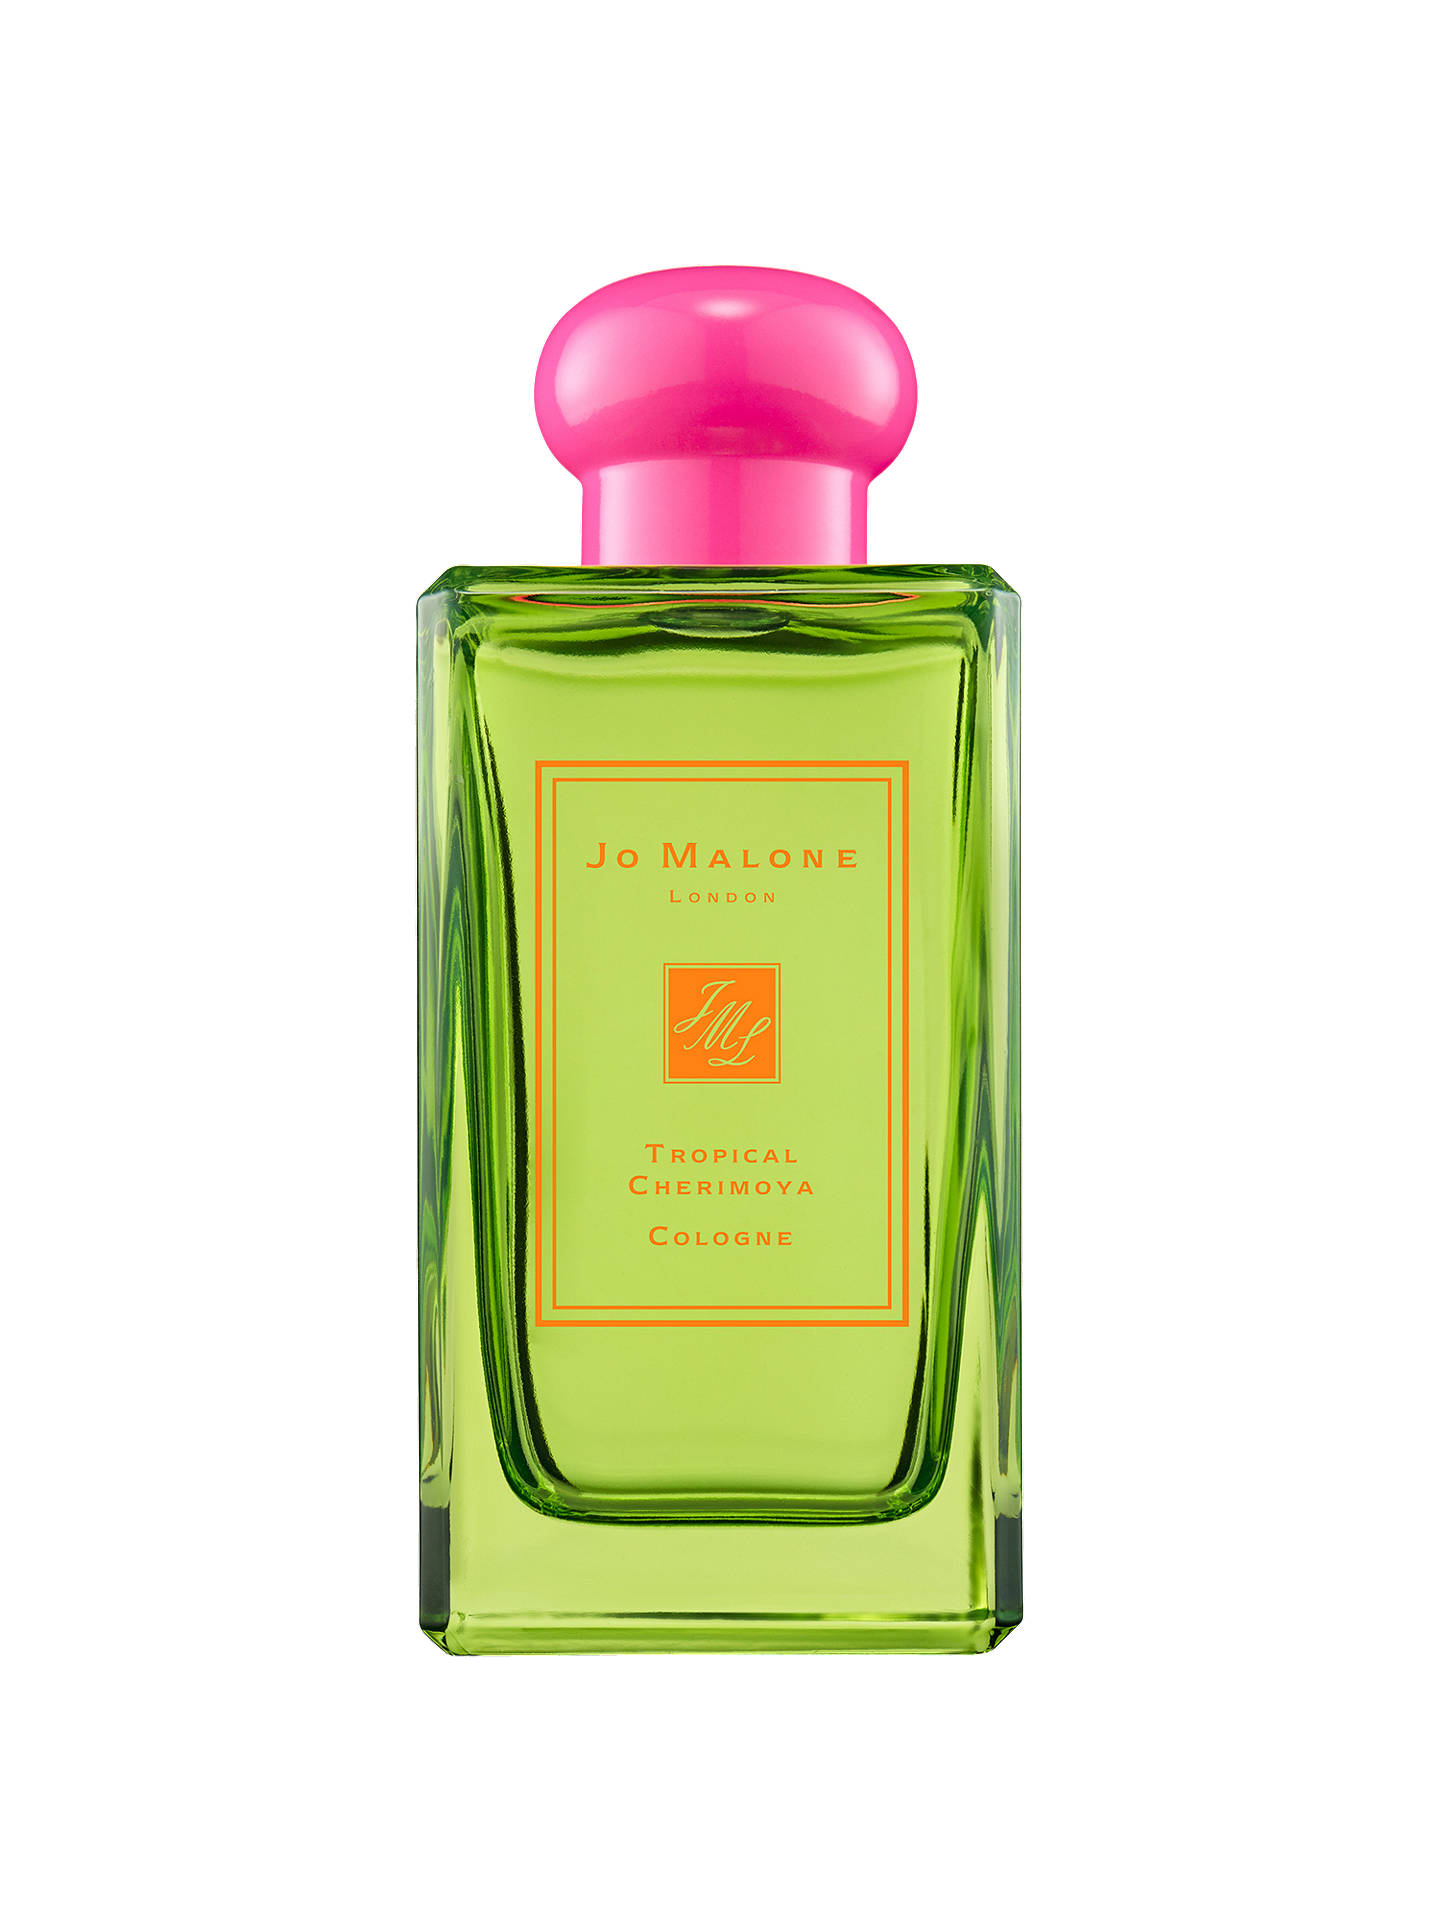 BuyJo Malone London Tropical Cherimoya Cologne, 100ml Online at johnlewis.com